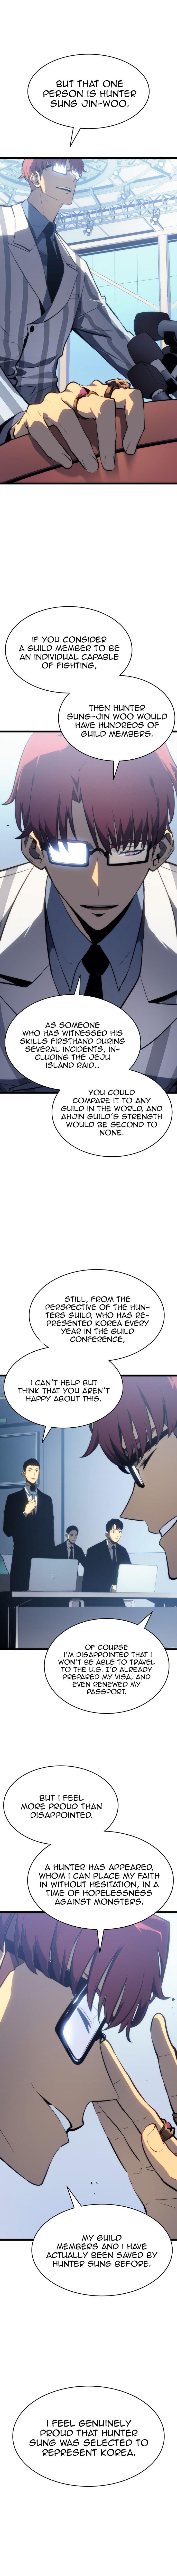 Solo Leveling, Chapter 141 image 005